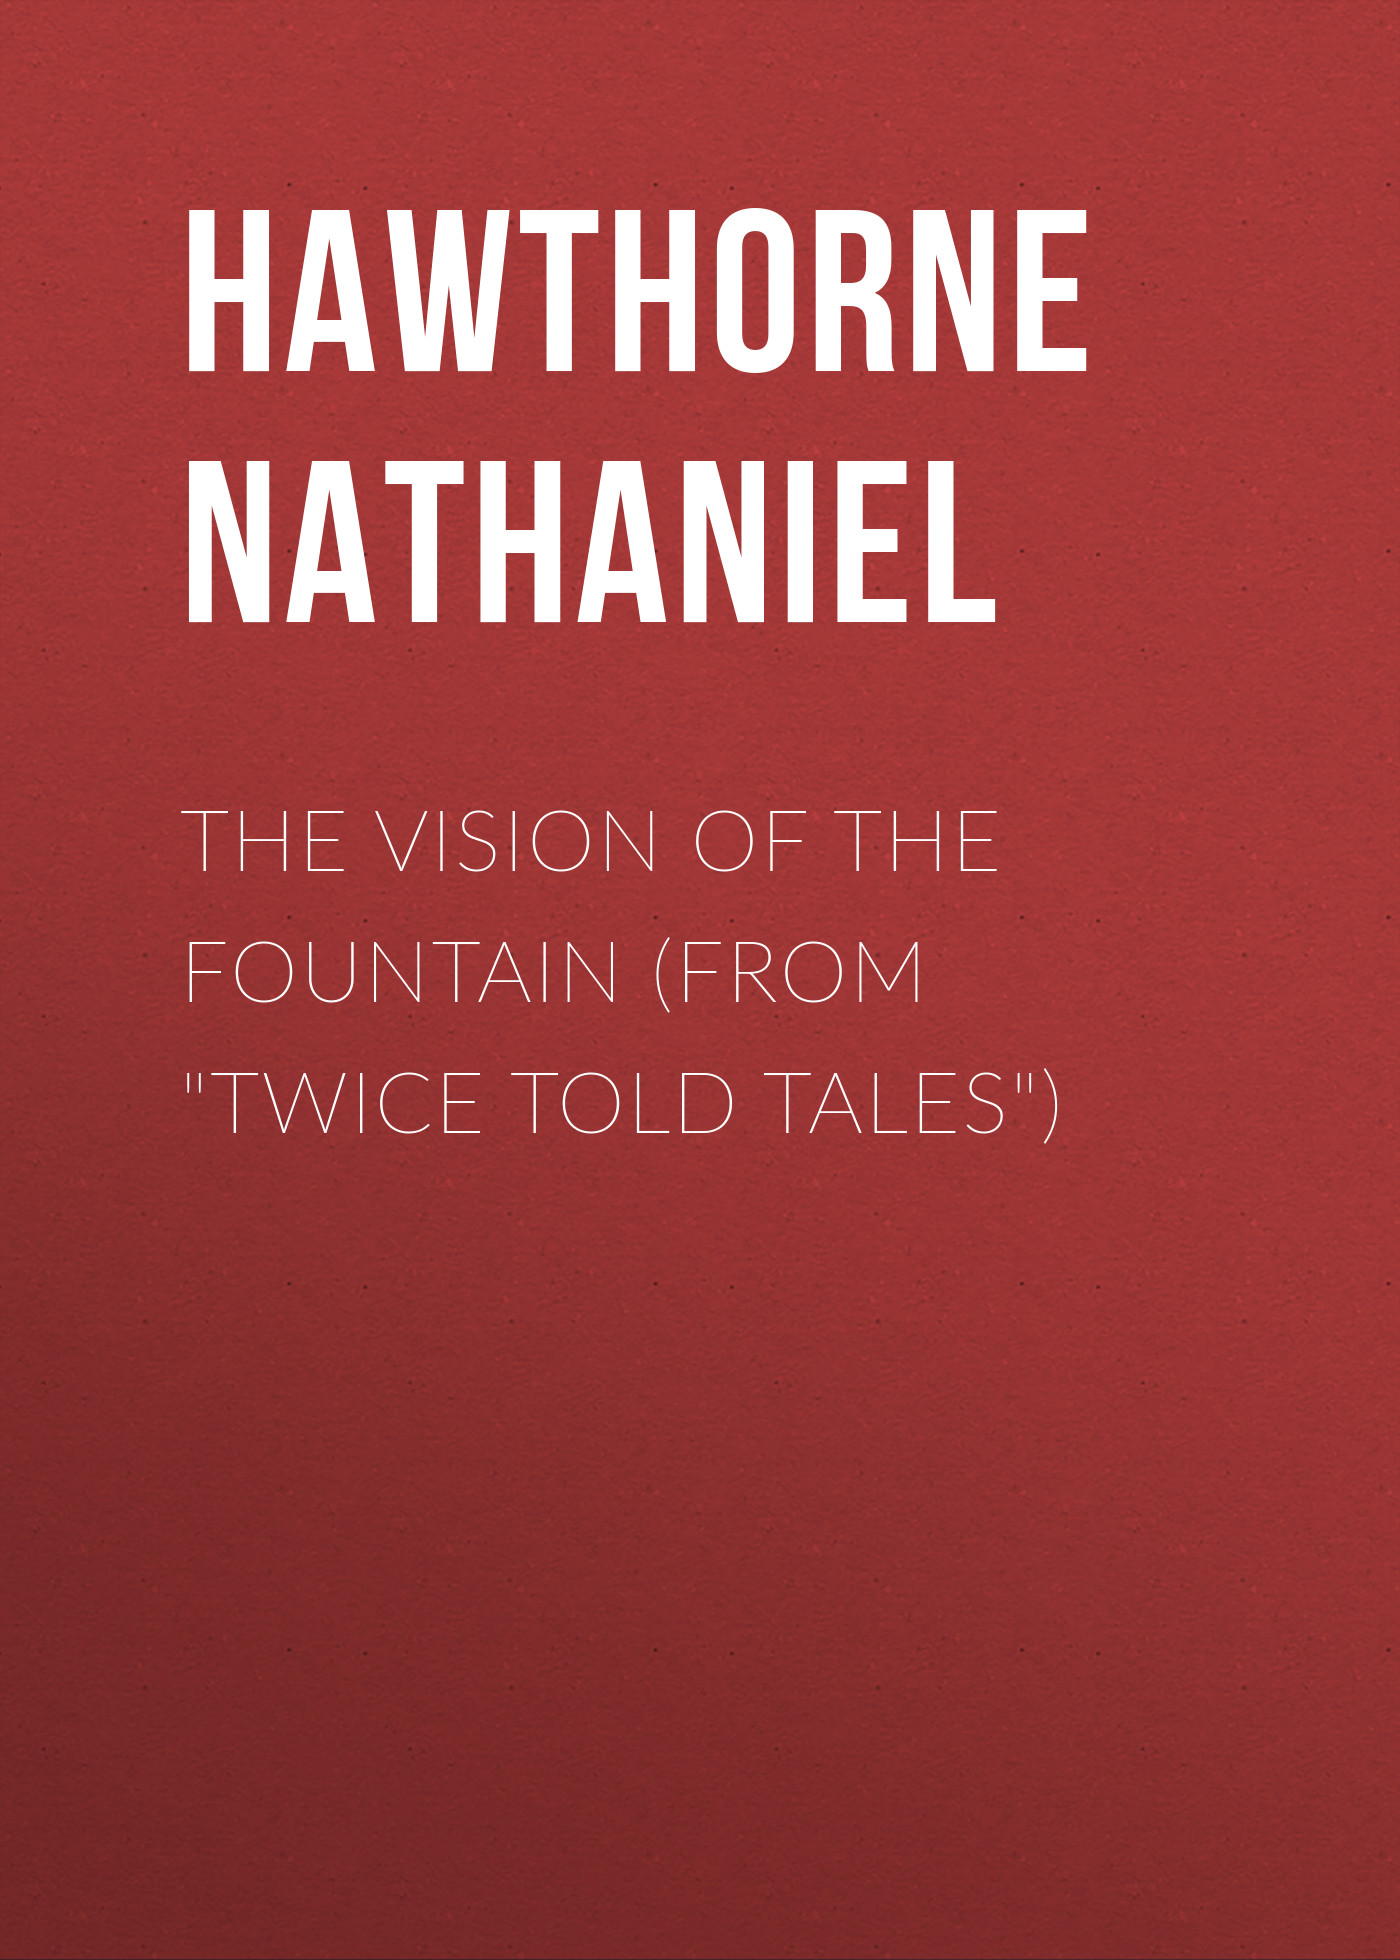 Hawthorne Nathaniel The Vision of the Fountain (From